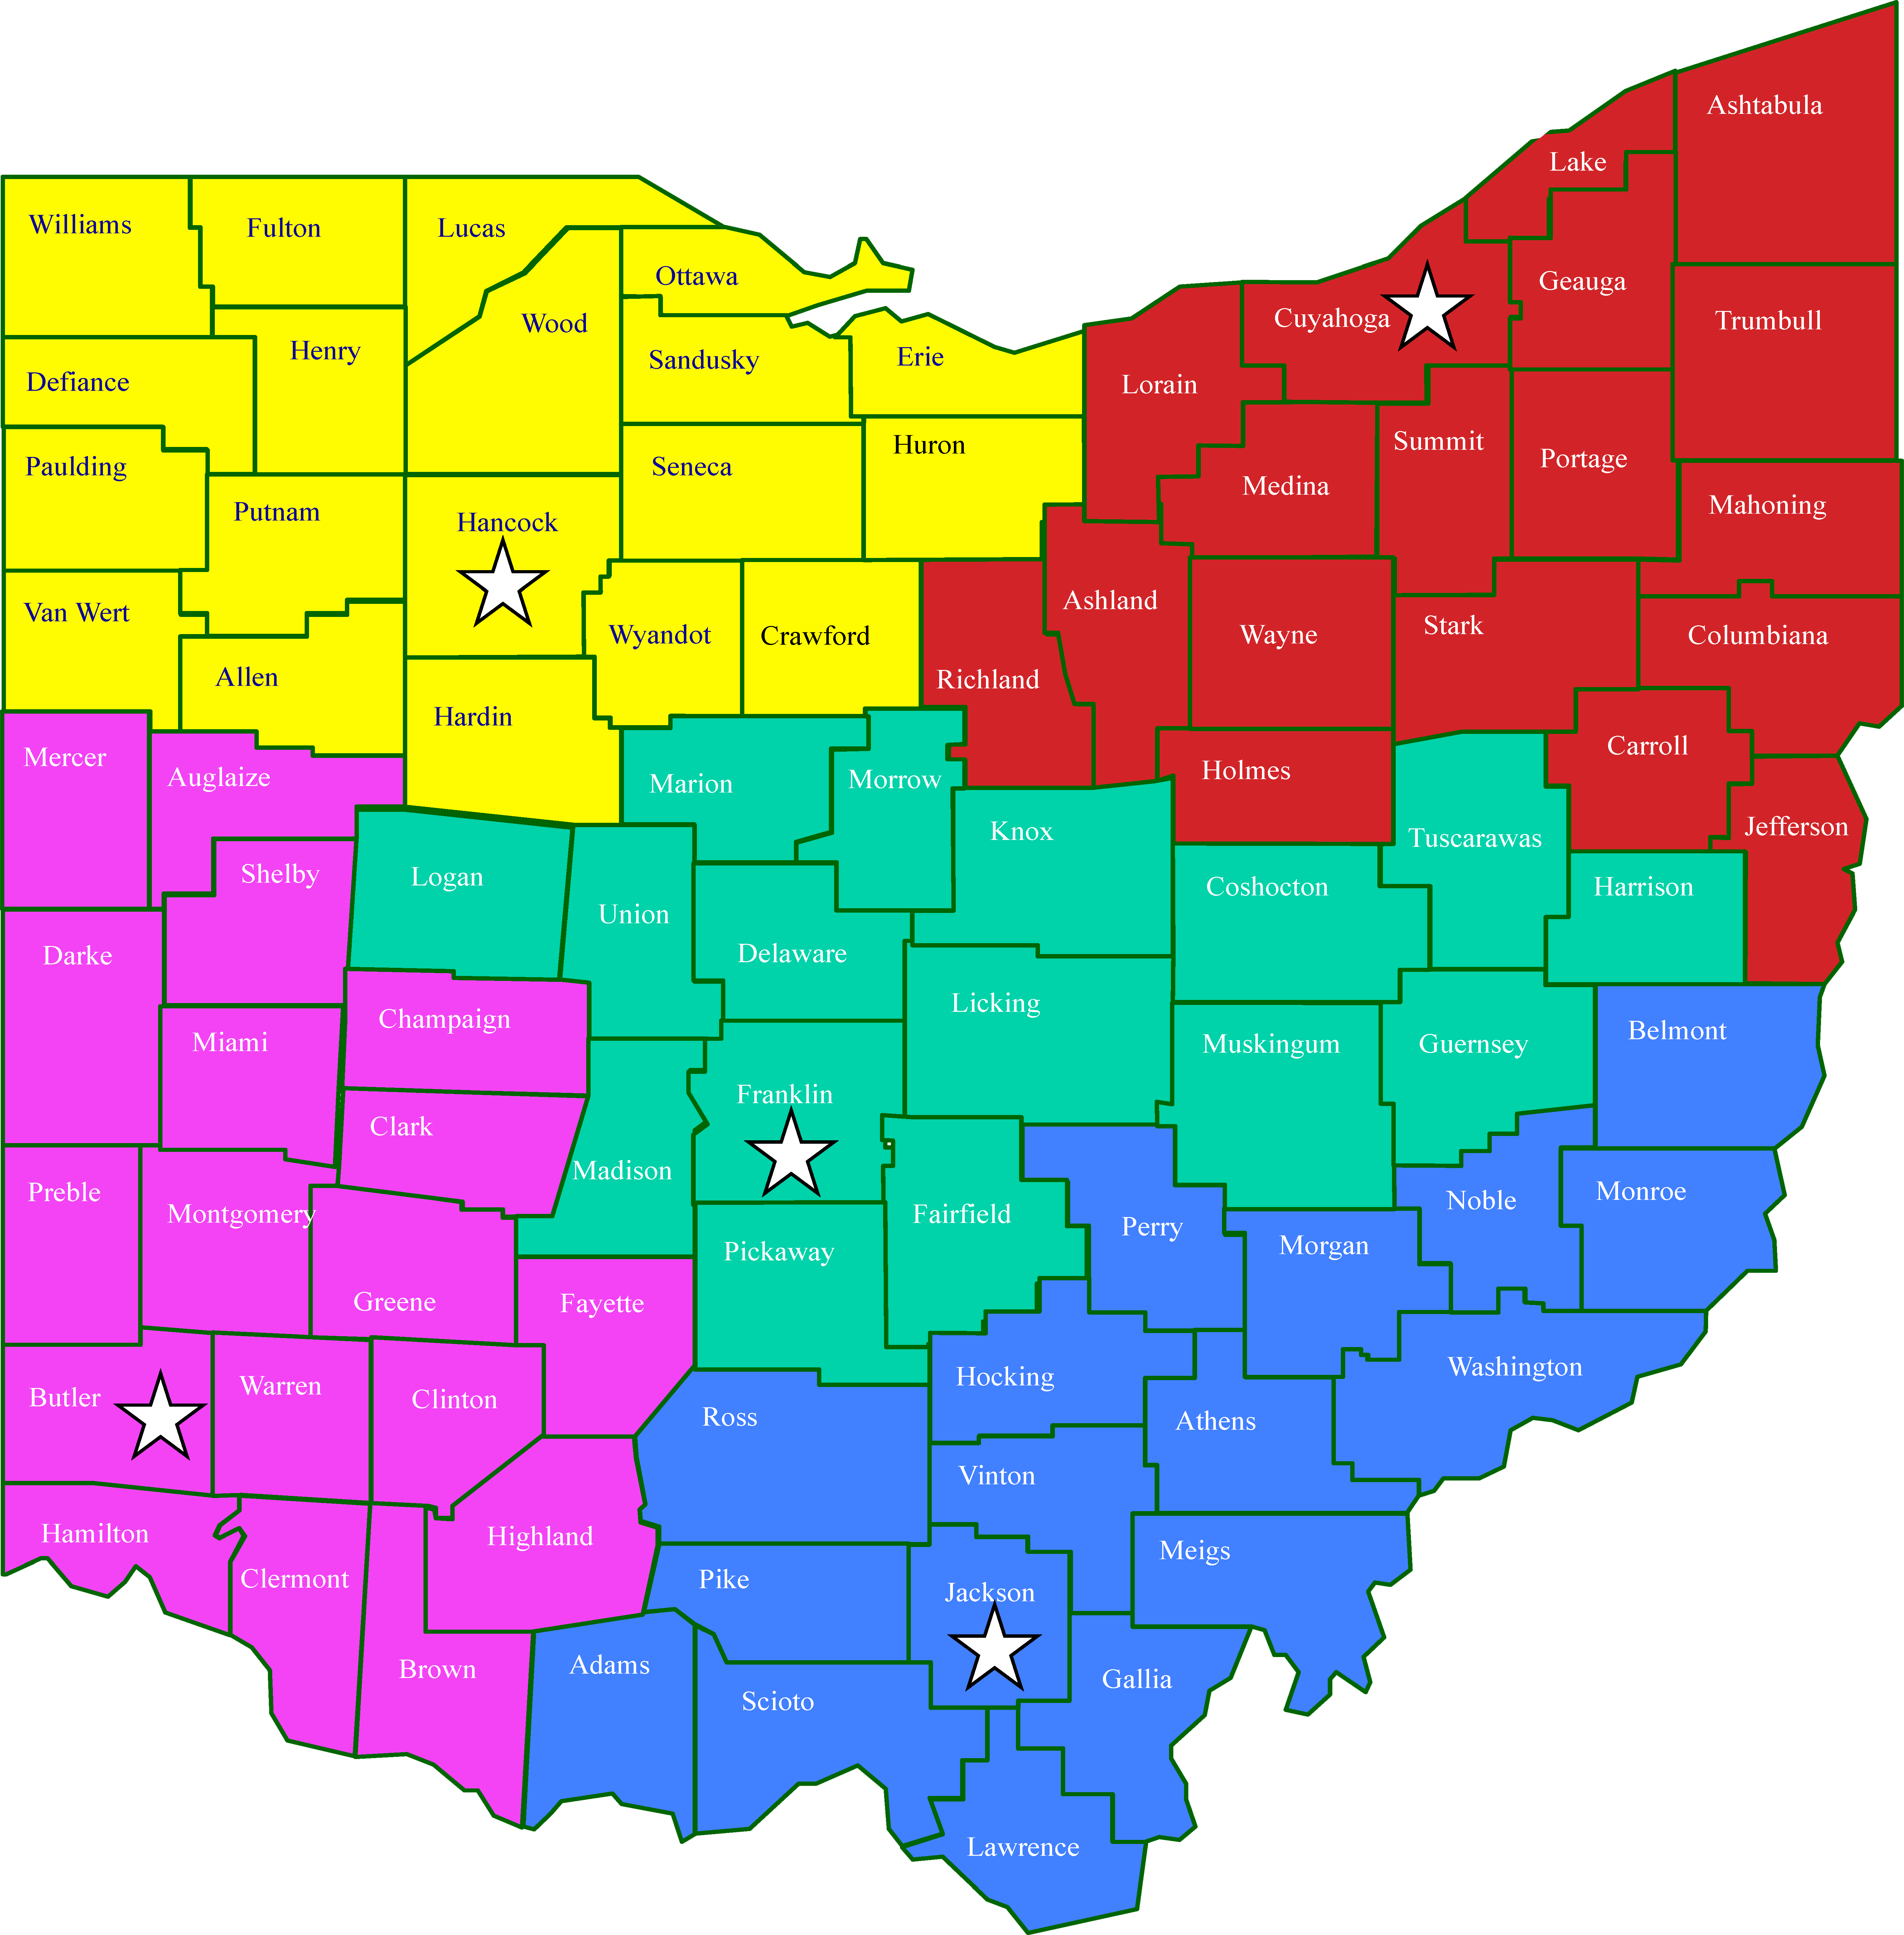 Ohio map depicting 5 regions